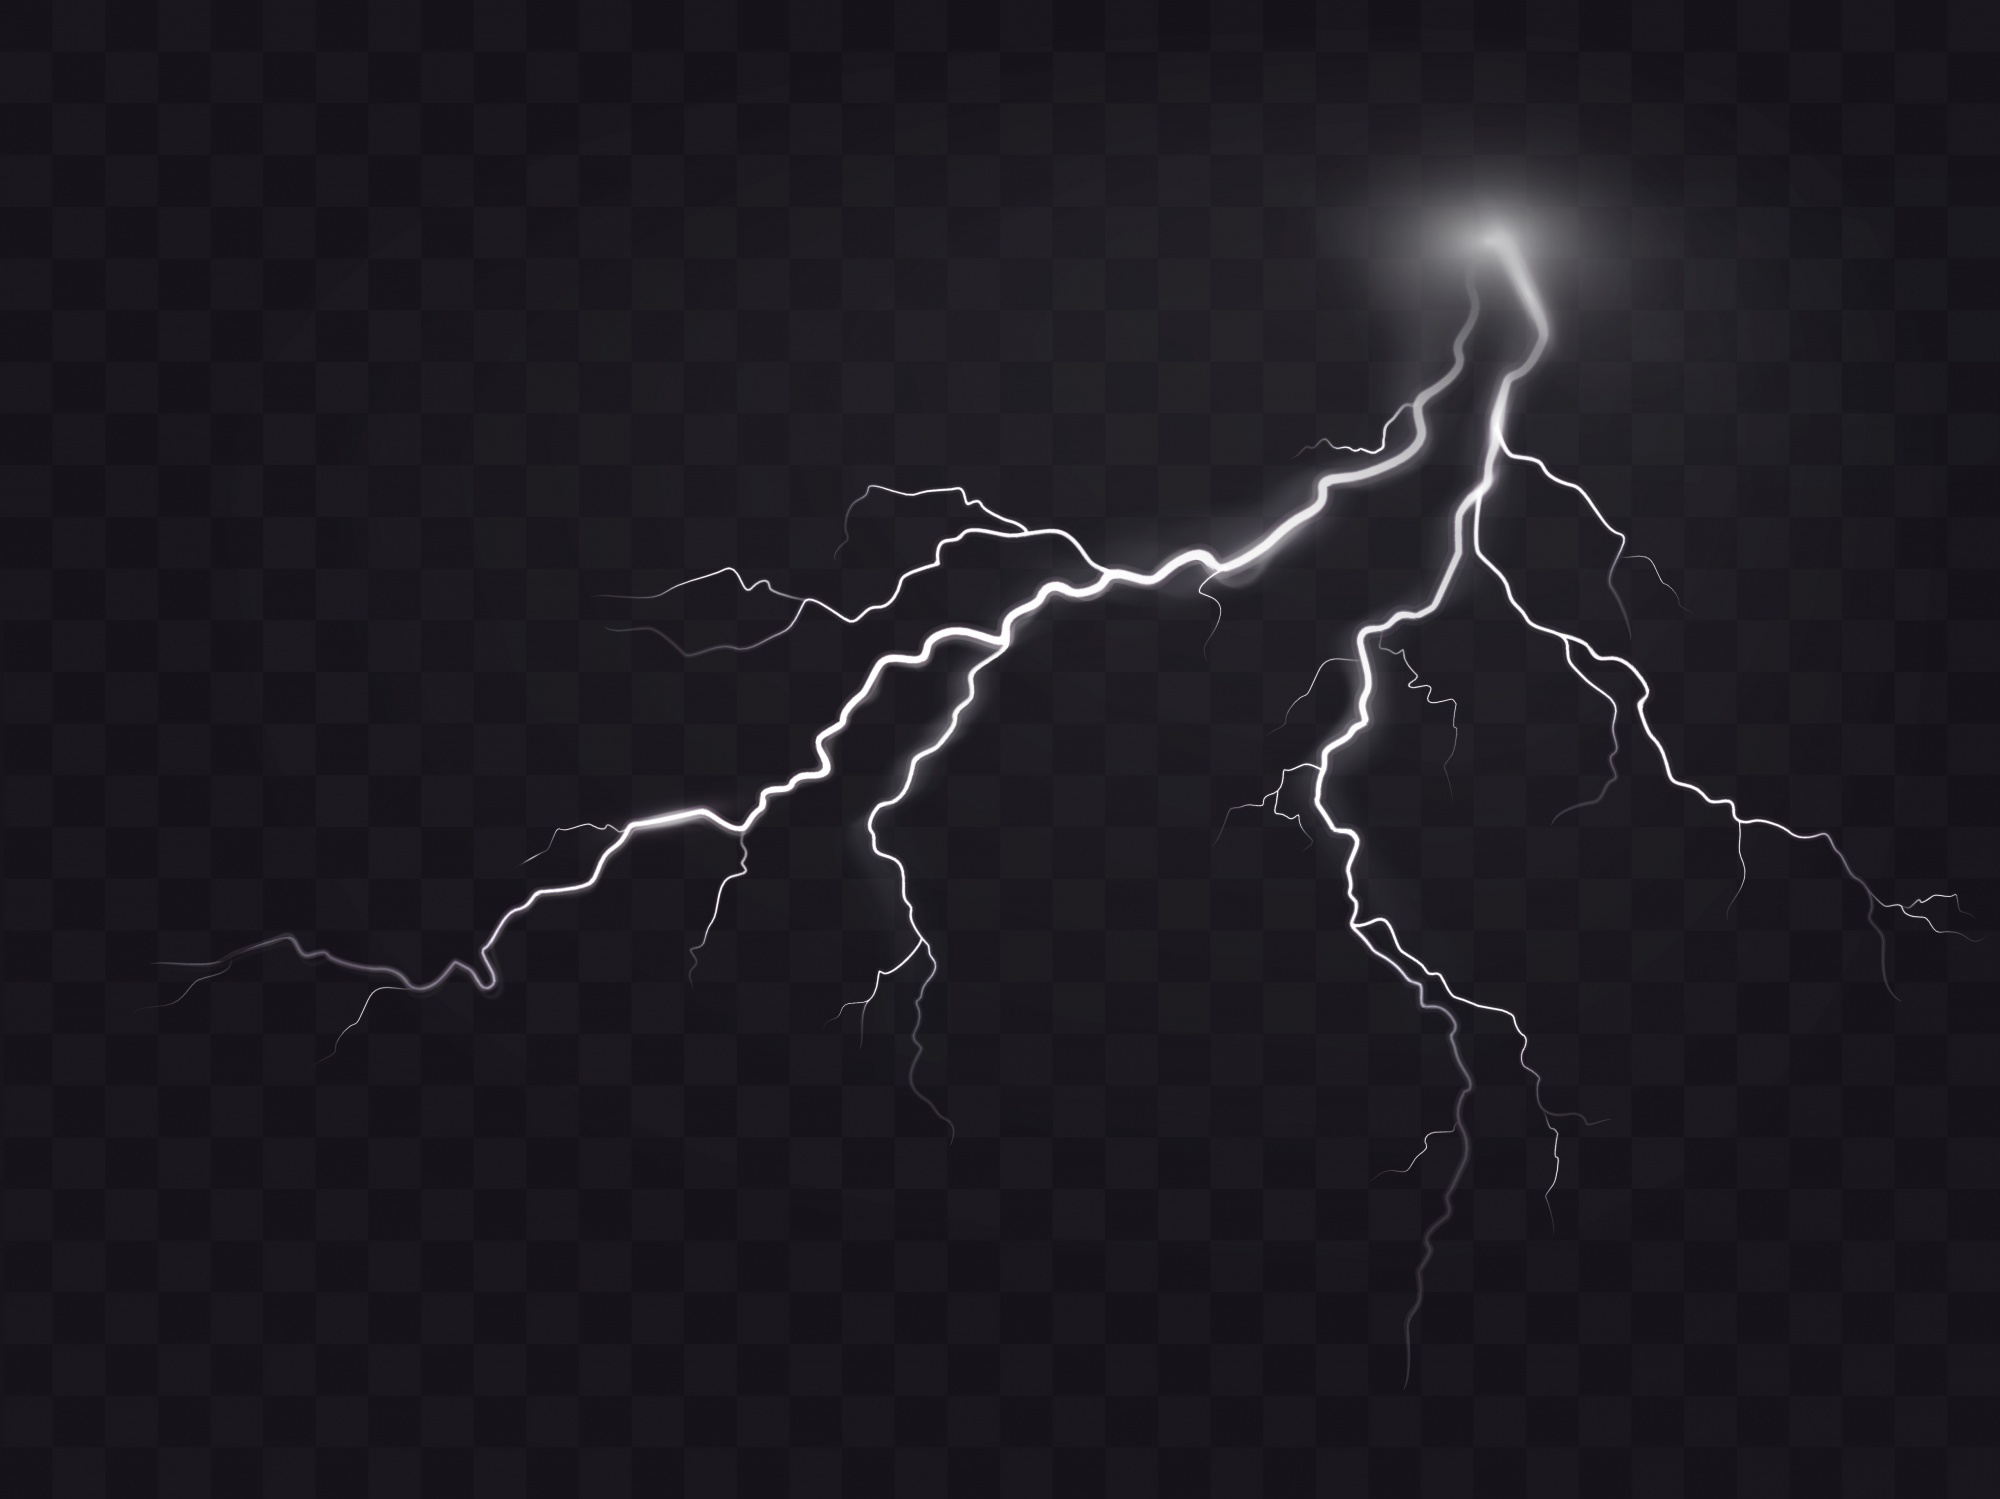 lightning vectors  photos and psd files free download lightning bolt vector illustrator lightning bolt vector illustrator